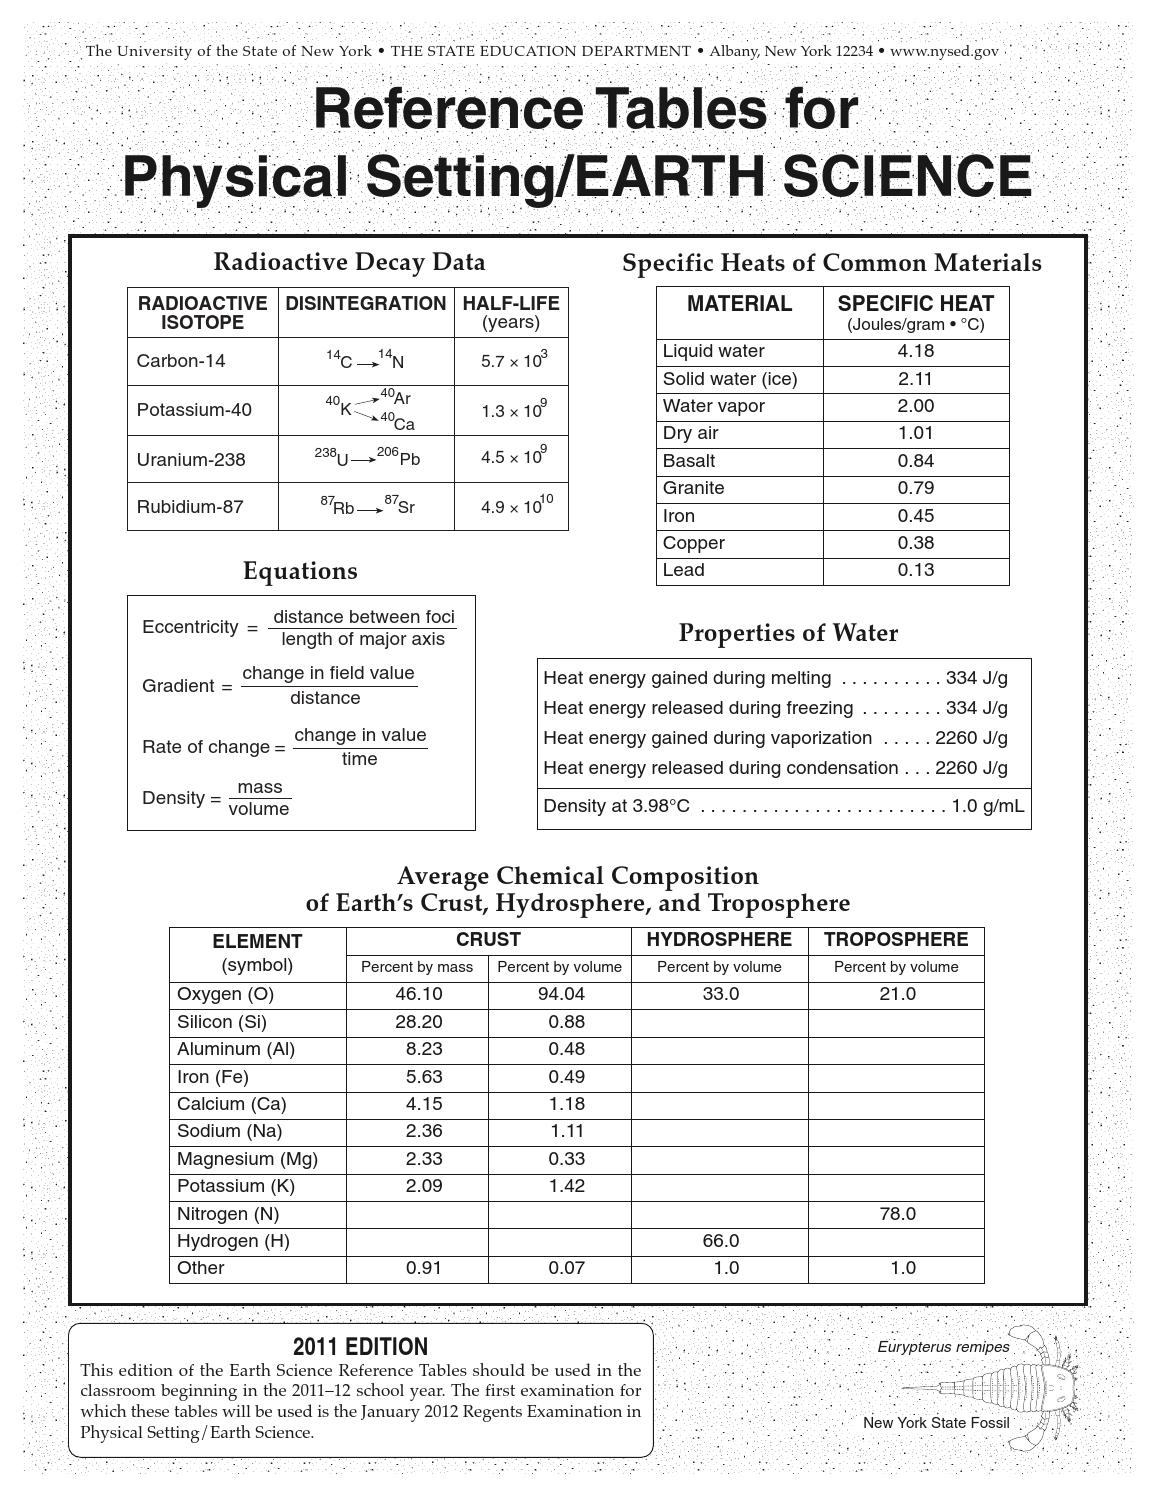 Earth Science Reference Tables 2011 By Sam Zebelman Issuu